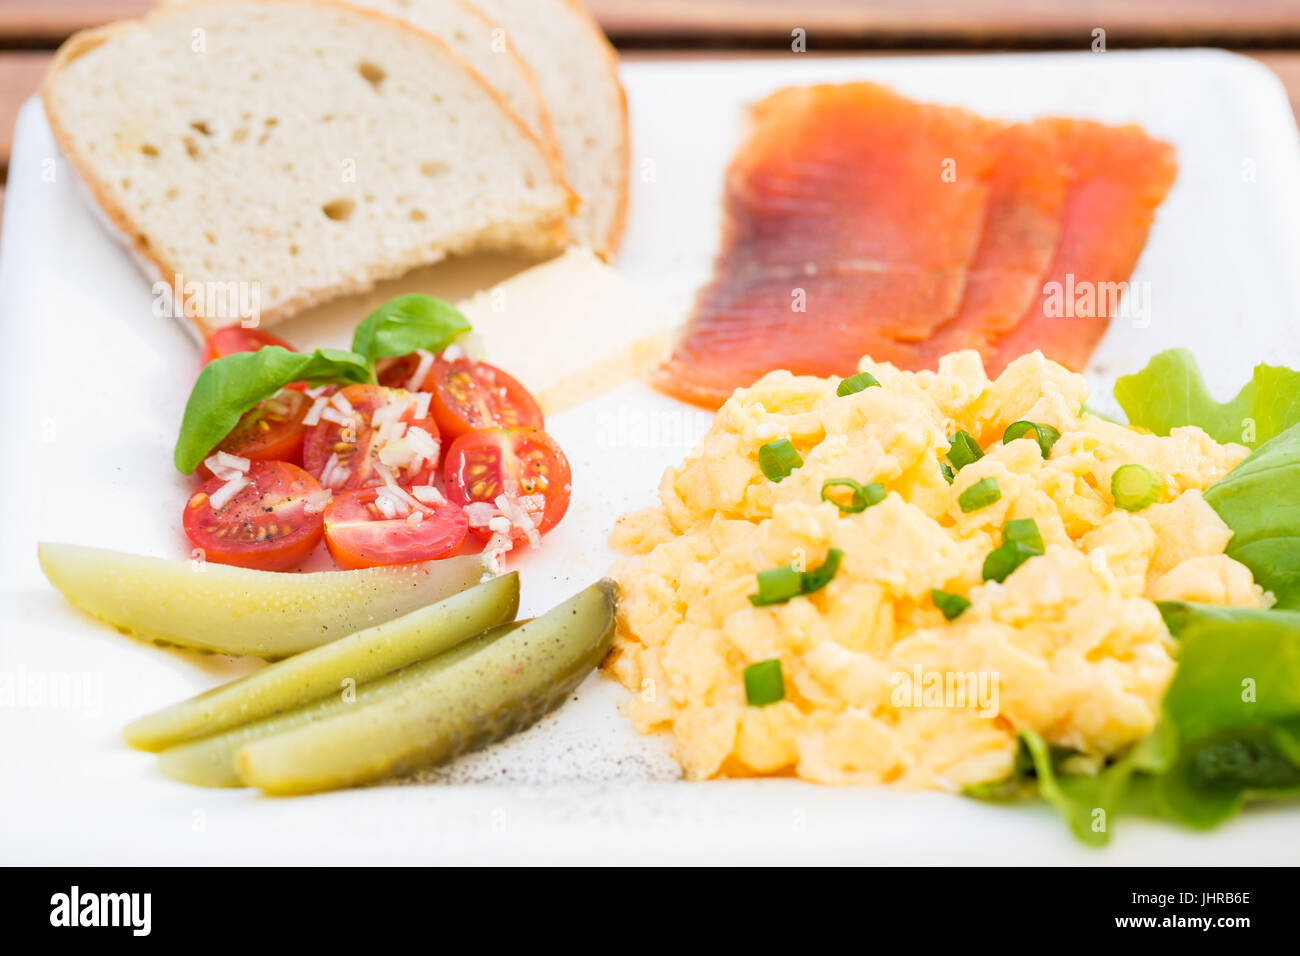 Breakfast set, scrambled eggs with chives, fish, cucumber, tomato and bread - Stock Image